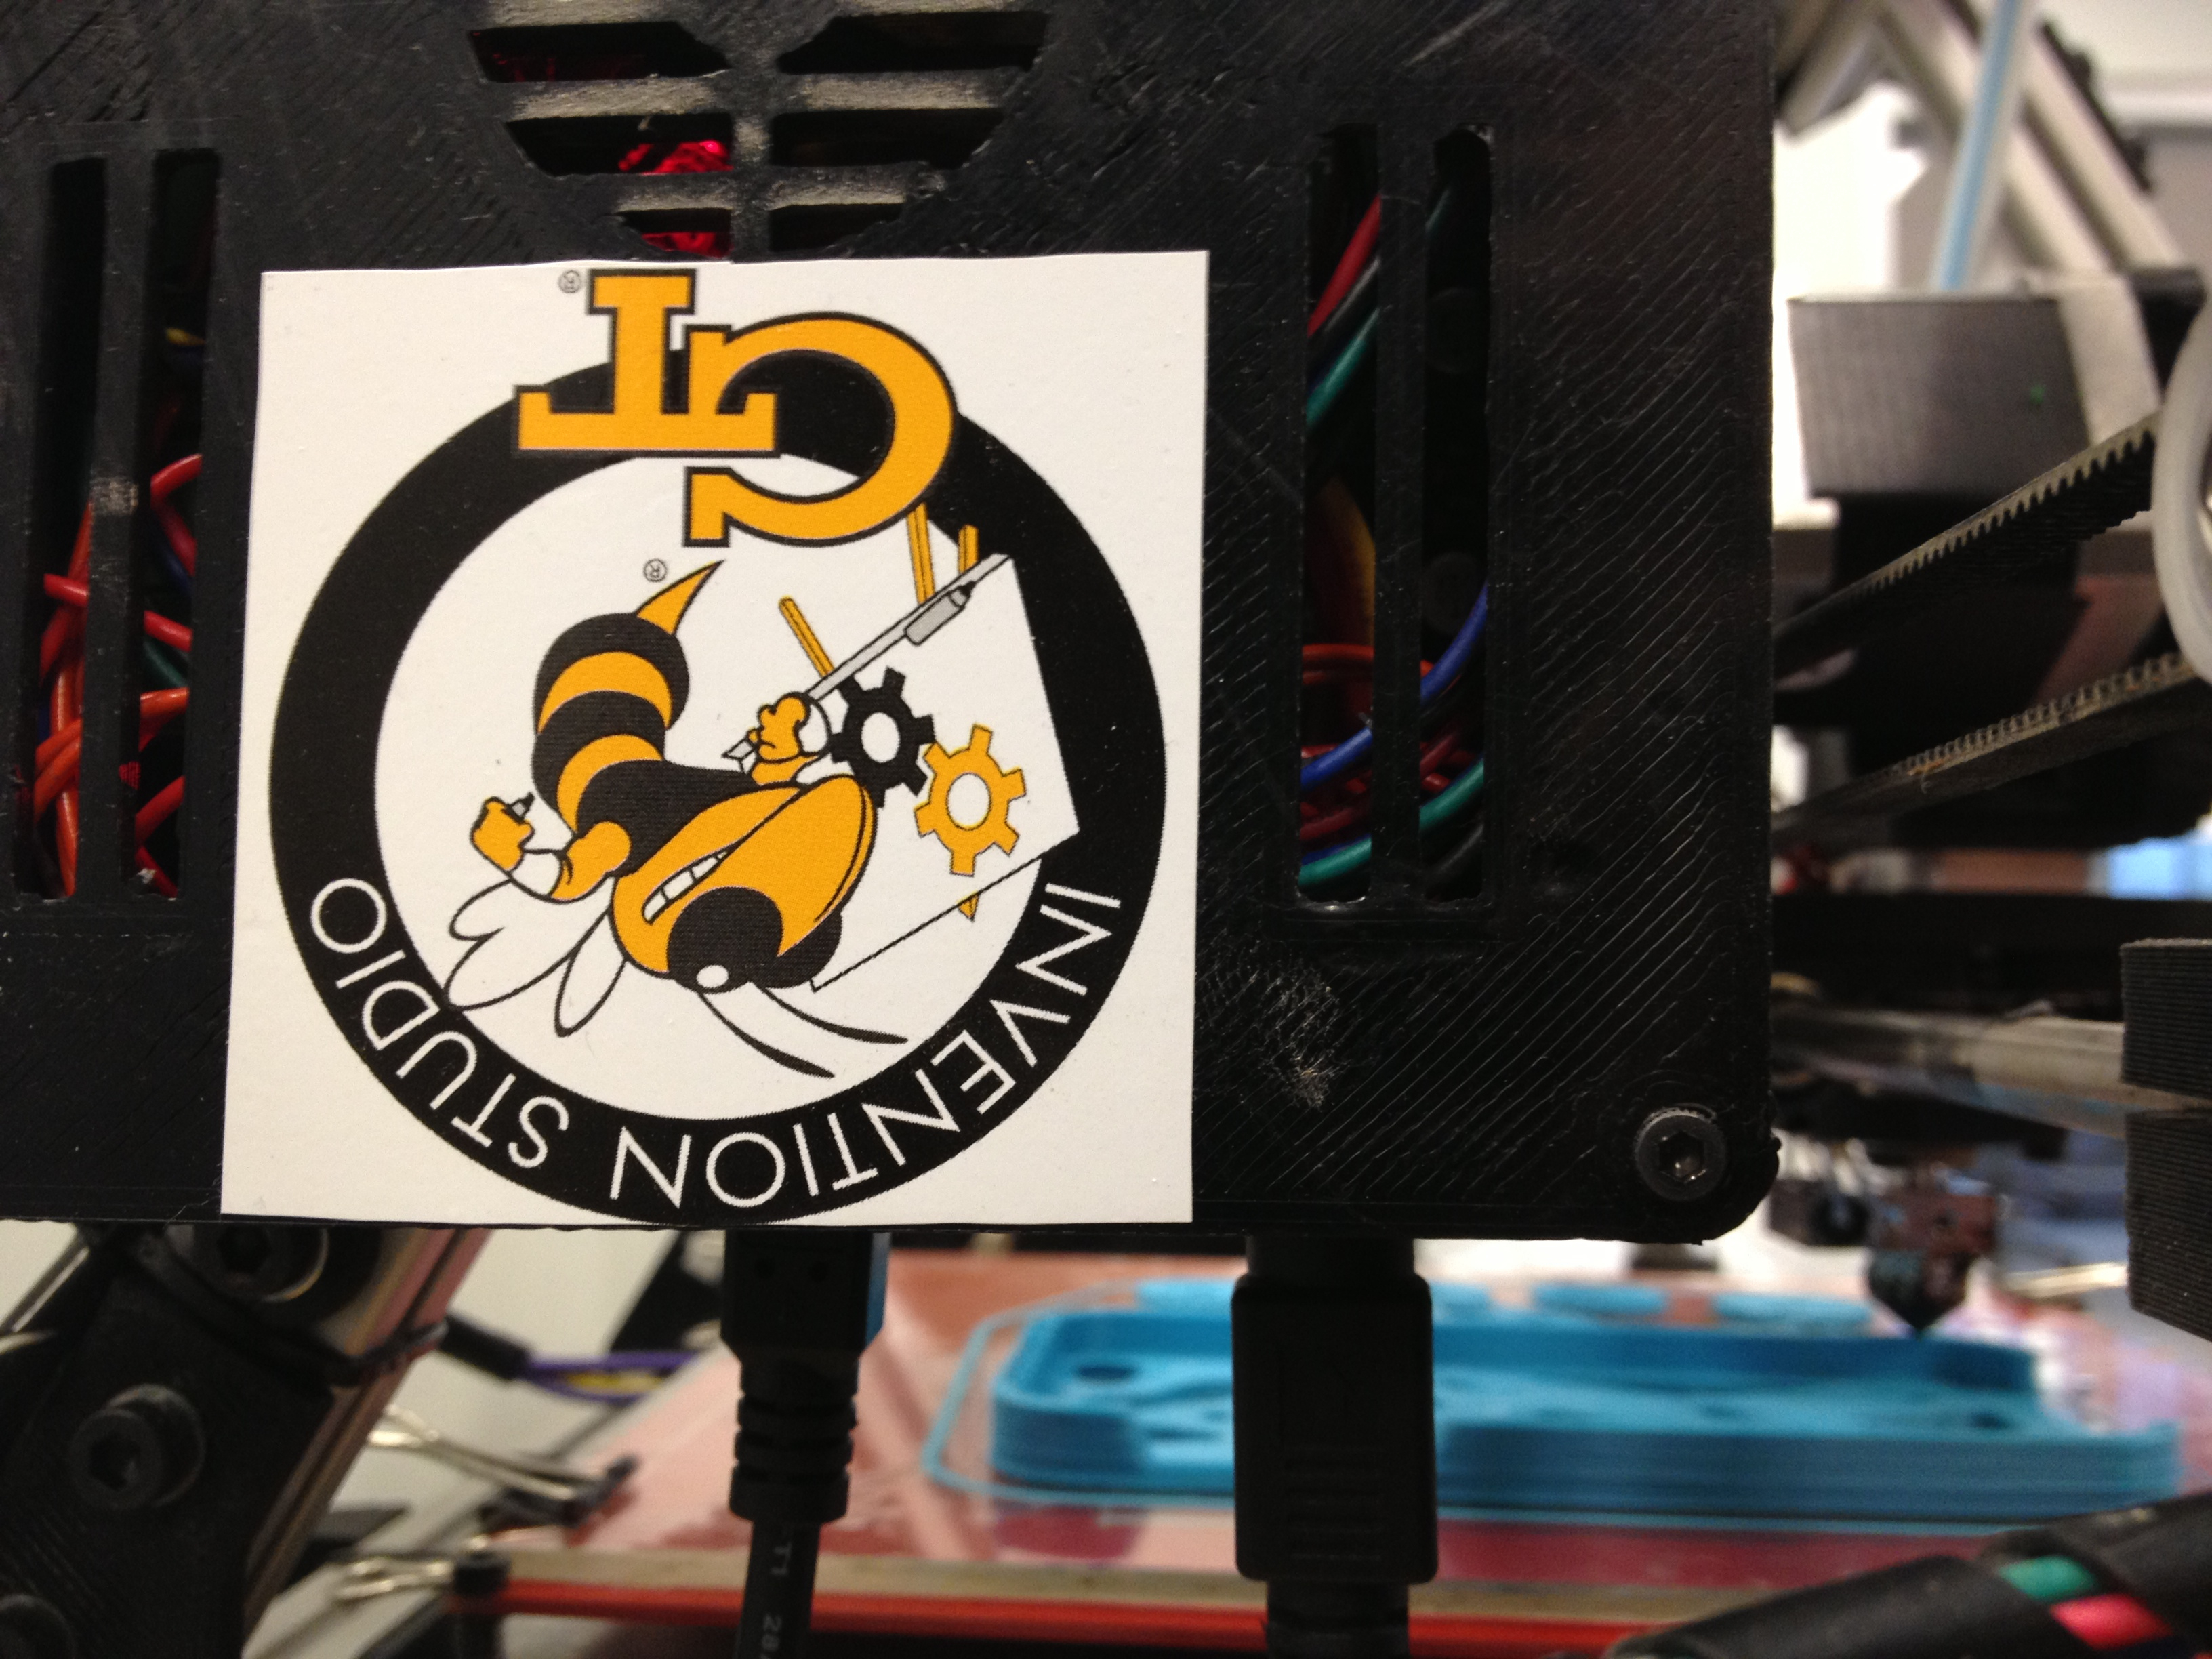 The Invention Studio does a lot of 3D printing